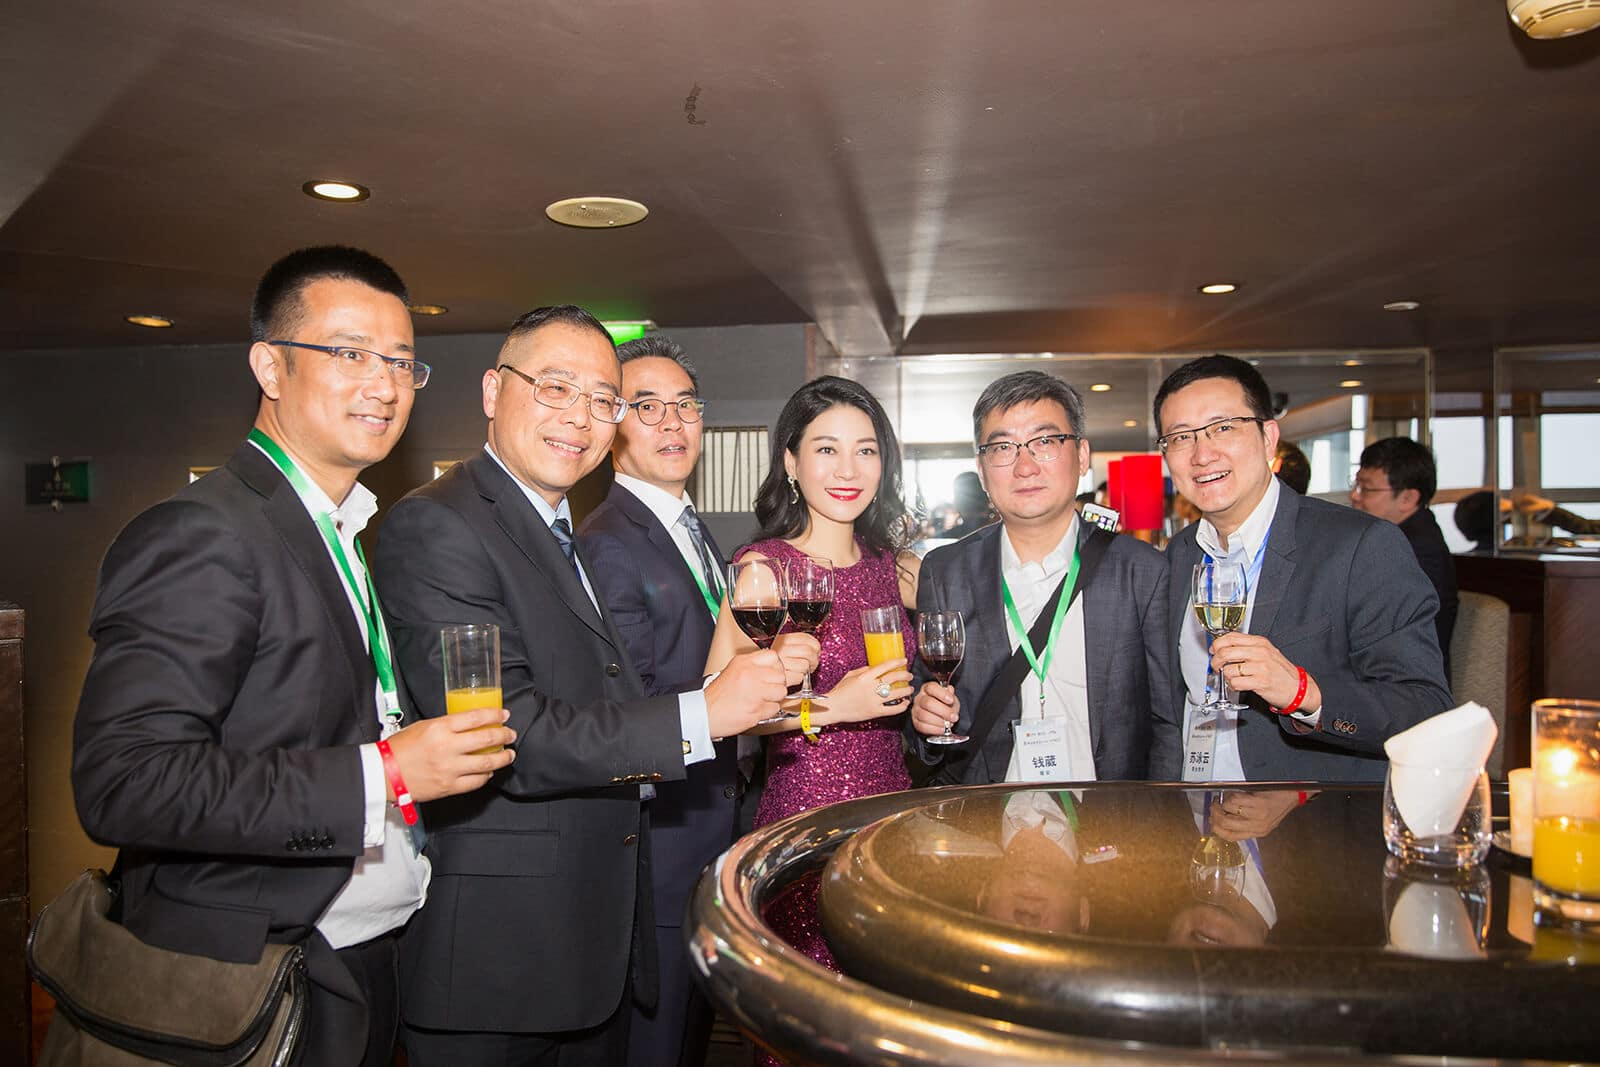 party-1-2017-global-general-counsels-and-business-leaders-shanghai-forum